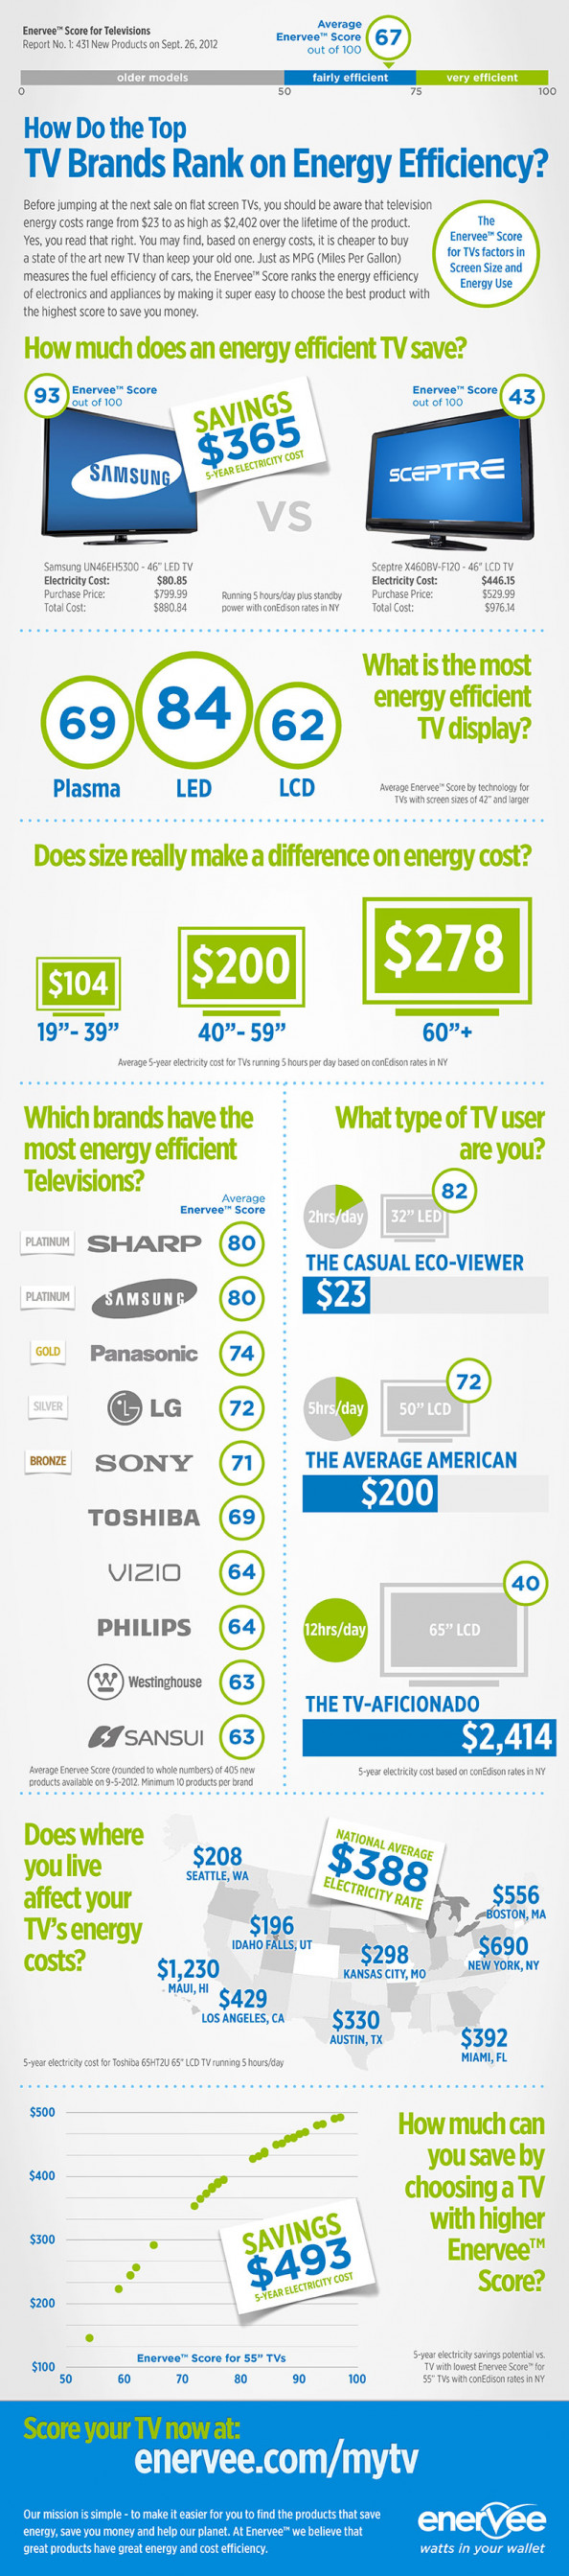 How Do the Top TV Brands Rank on Energy Efficiency? Infographic